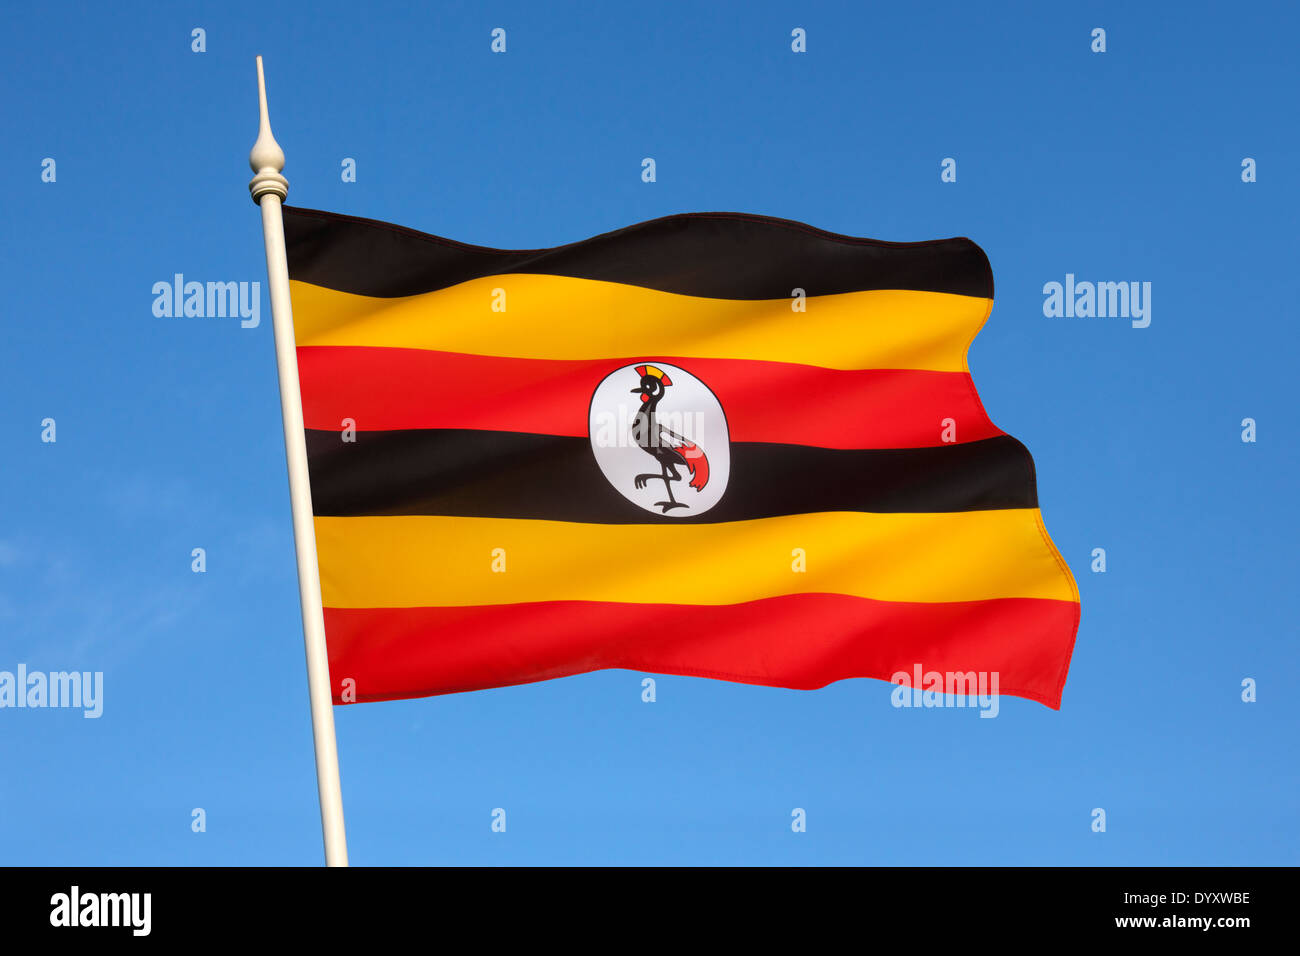 The flag of Uganda - Stock Image